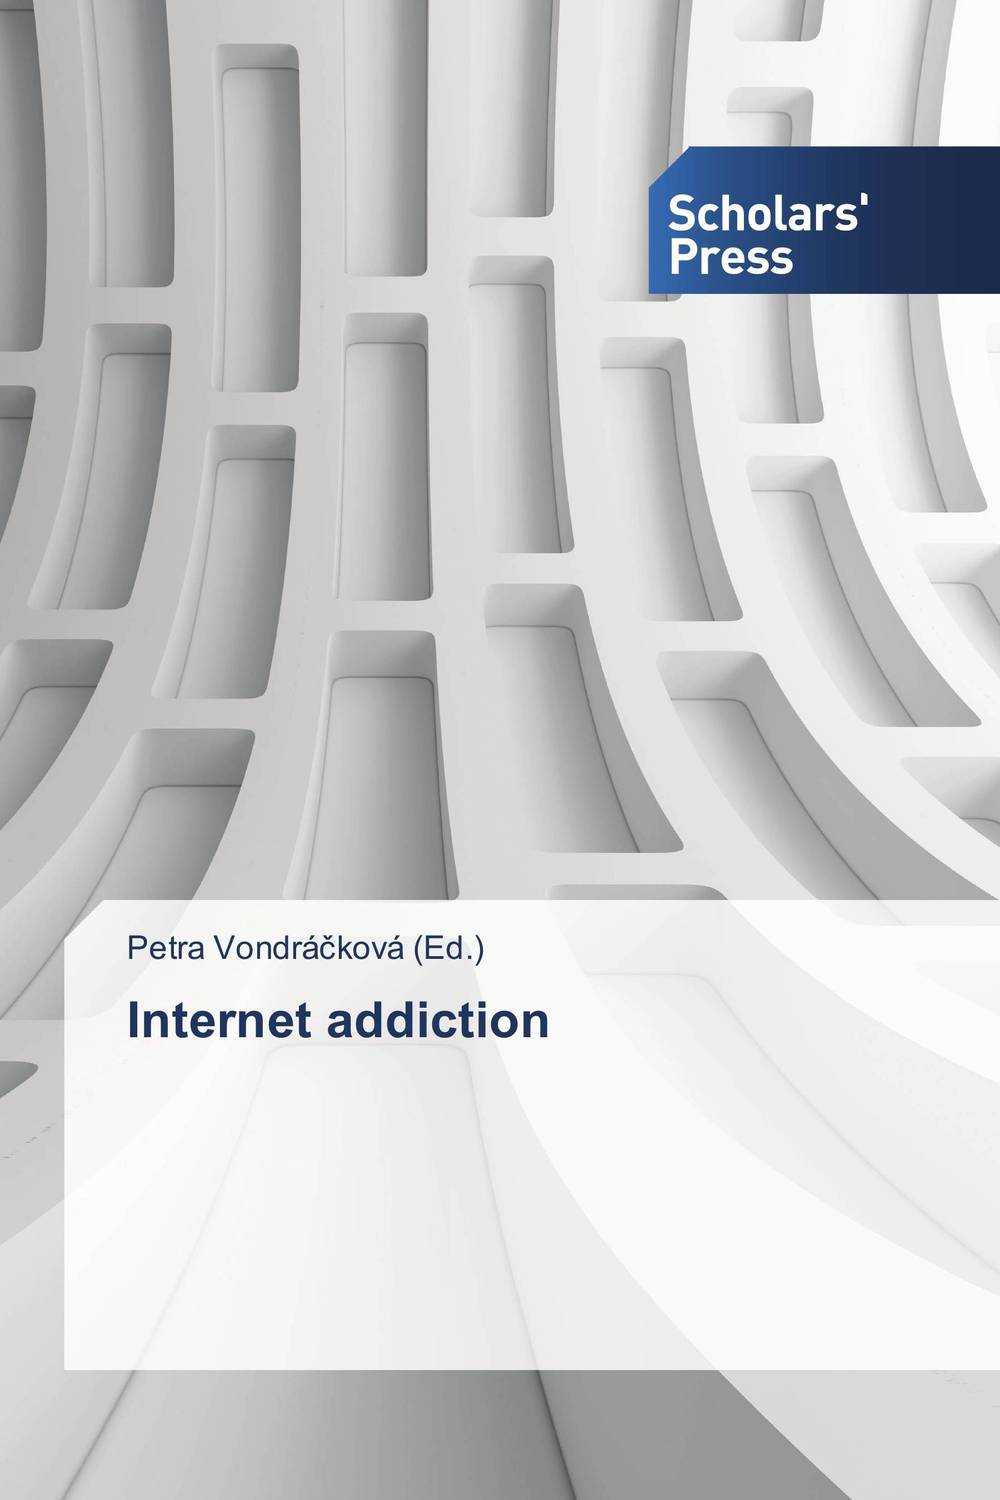 Internet addiction tv addiction and personality styles of adolescents